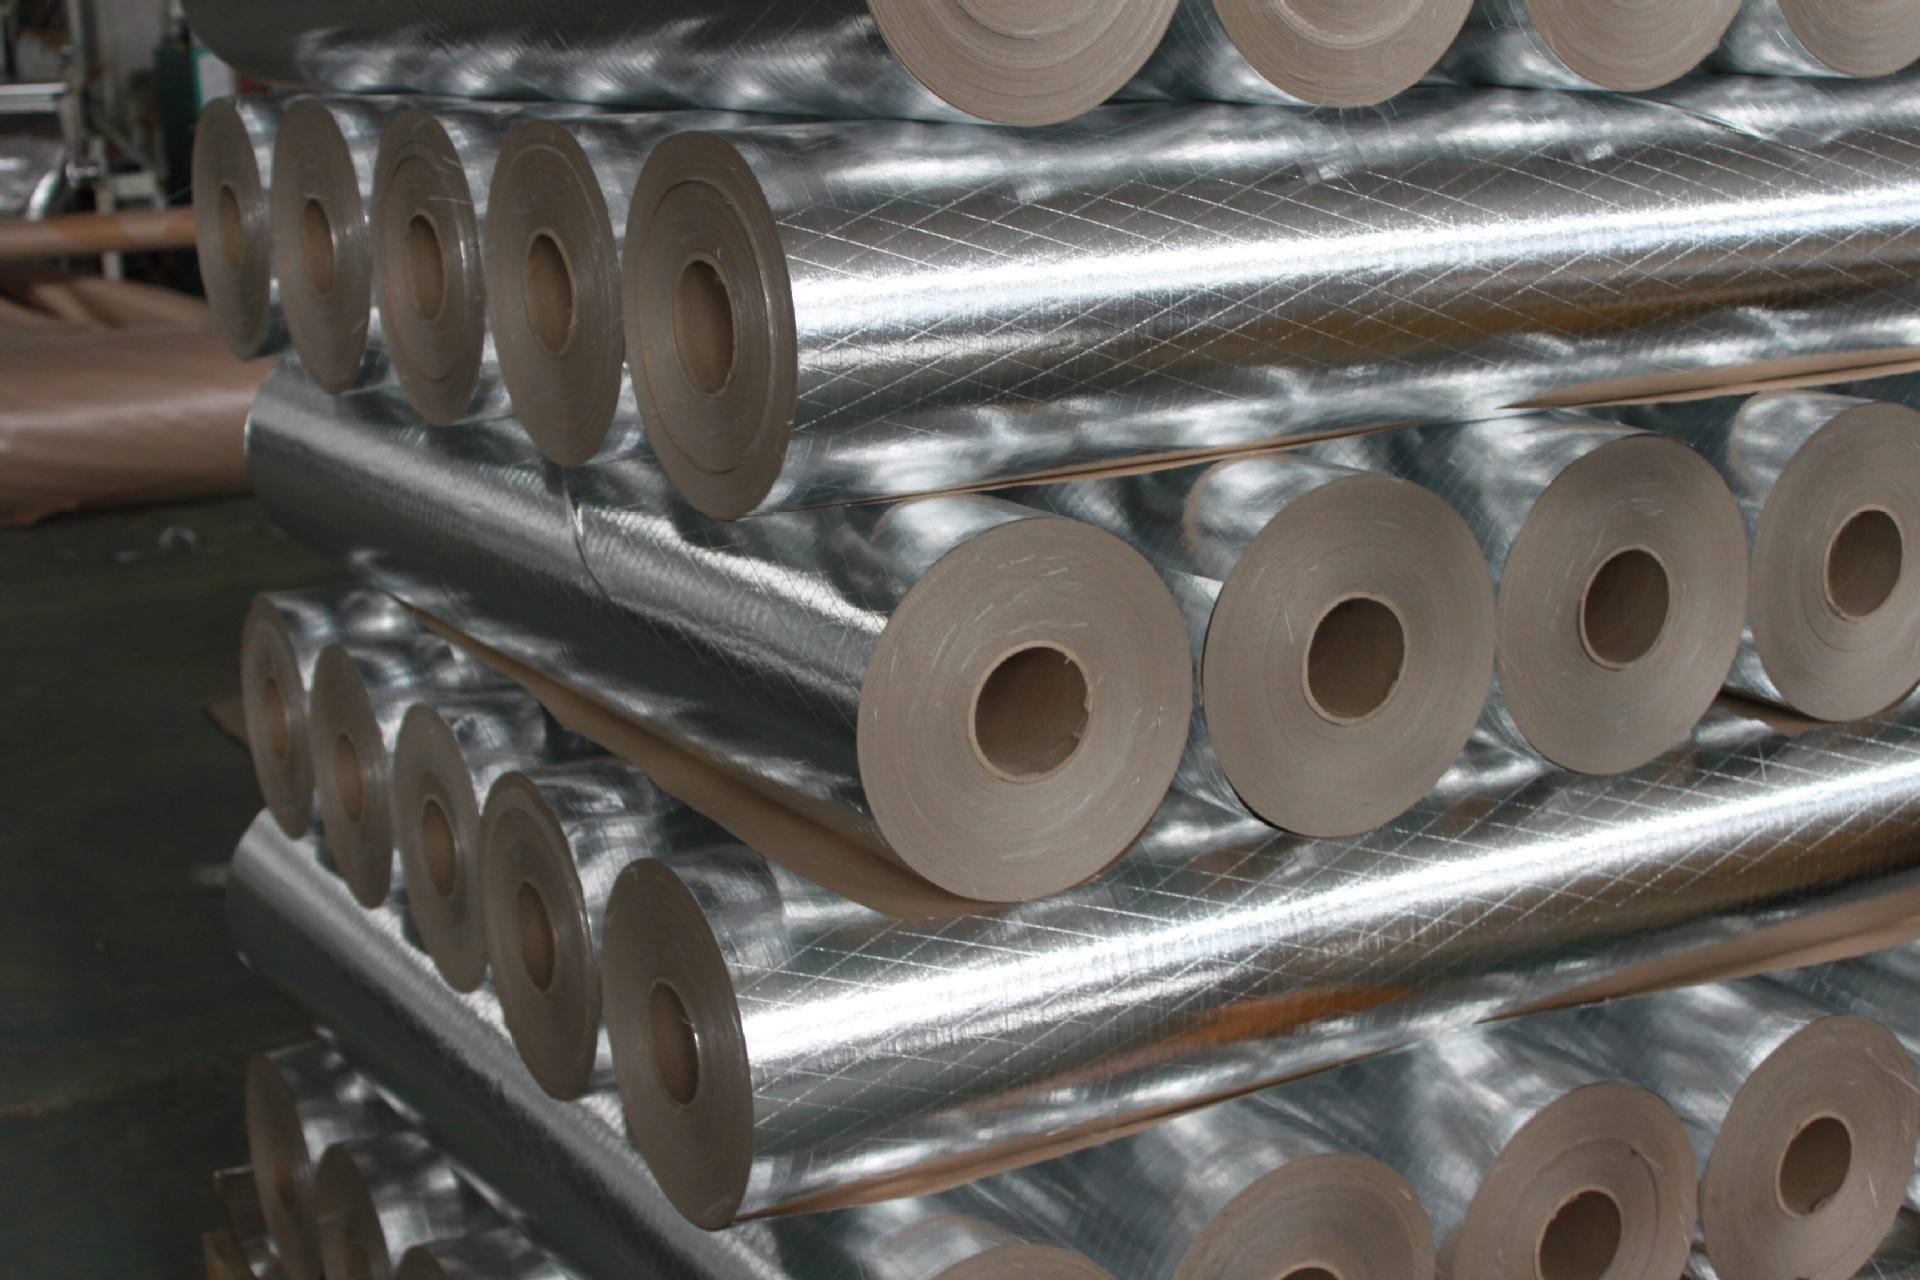 Uses of aluminum foil